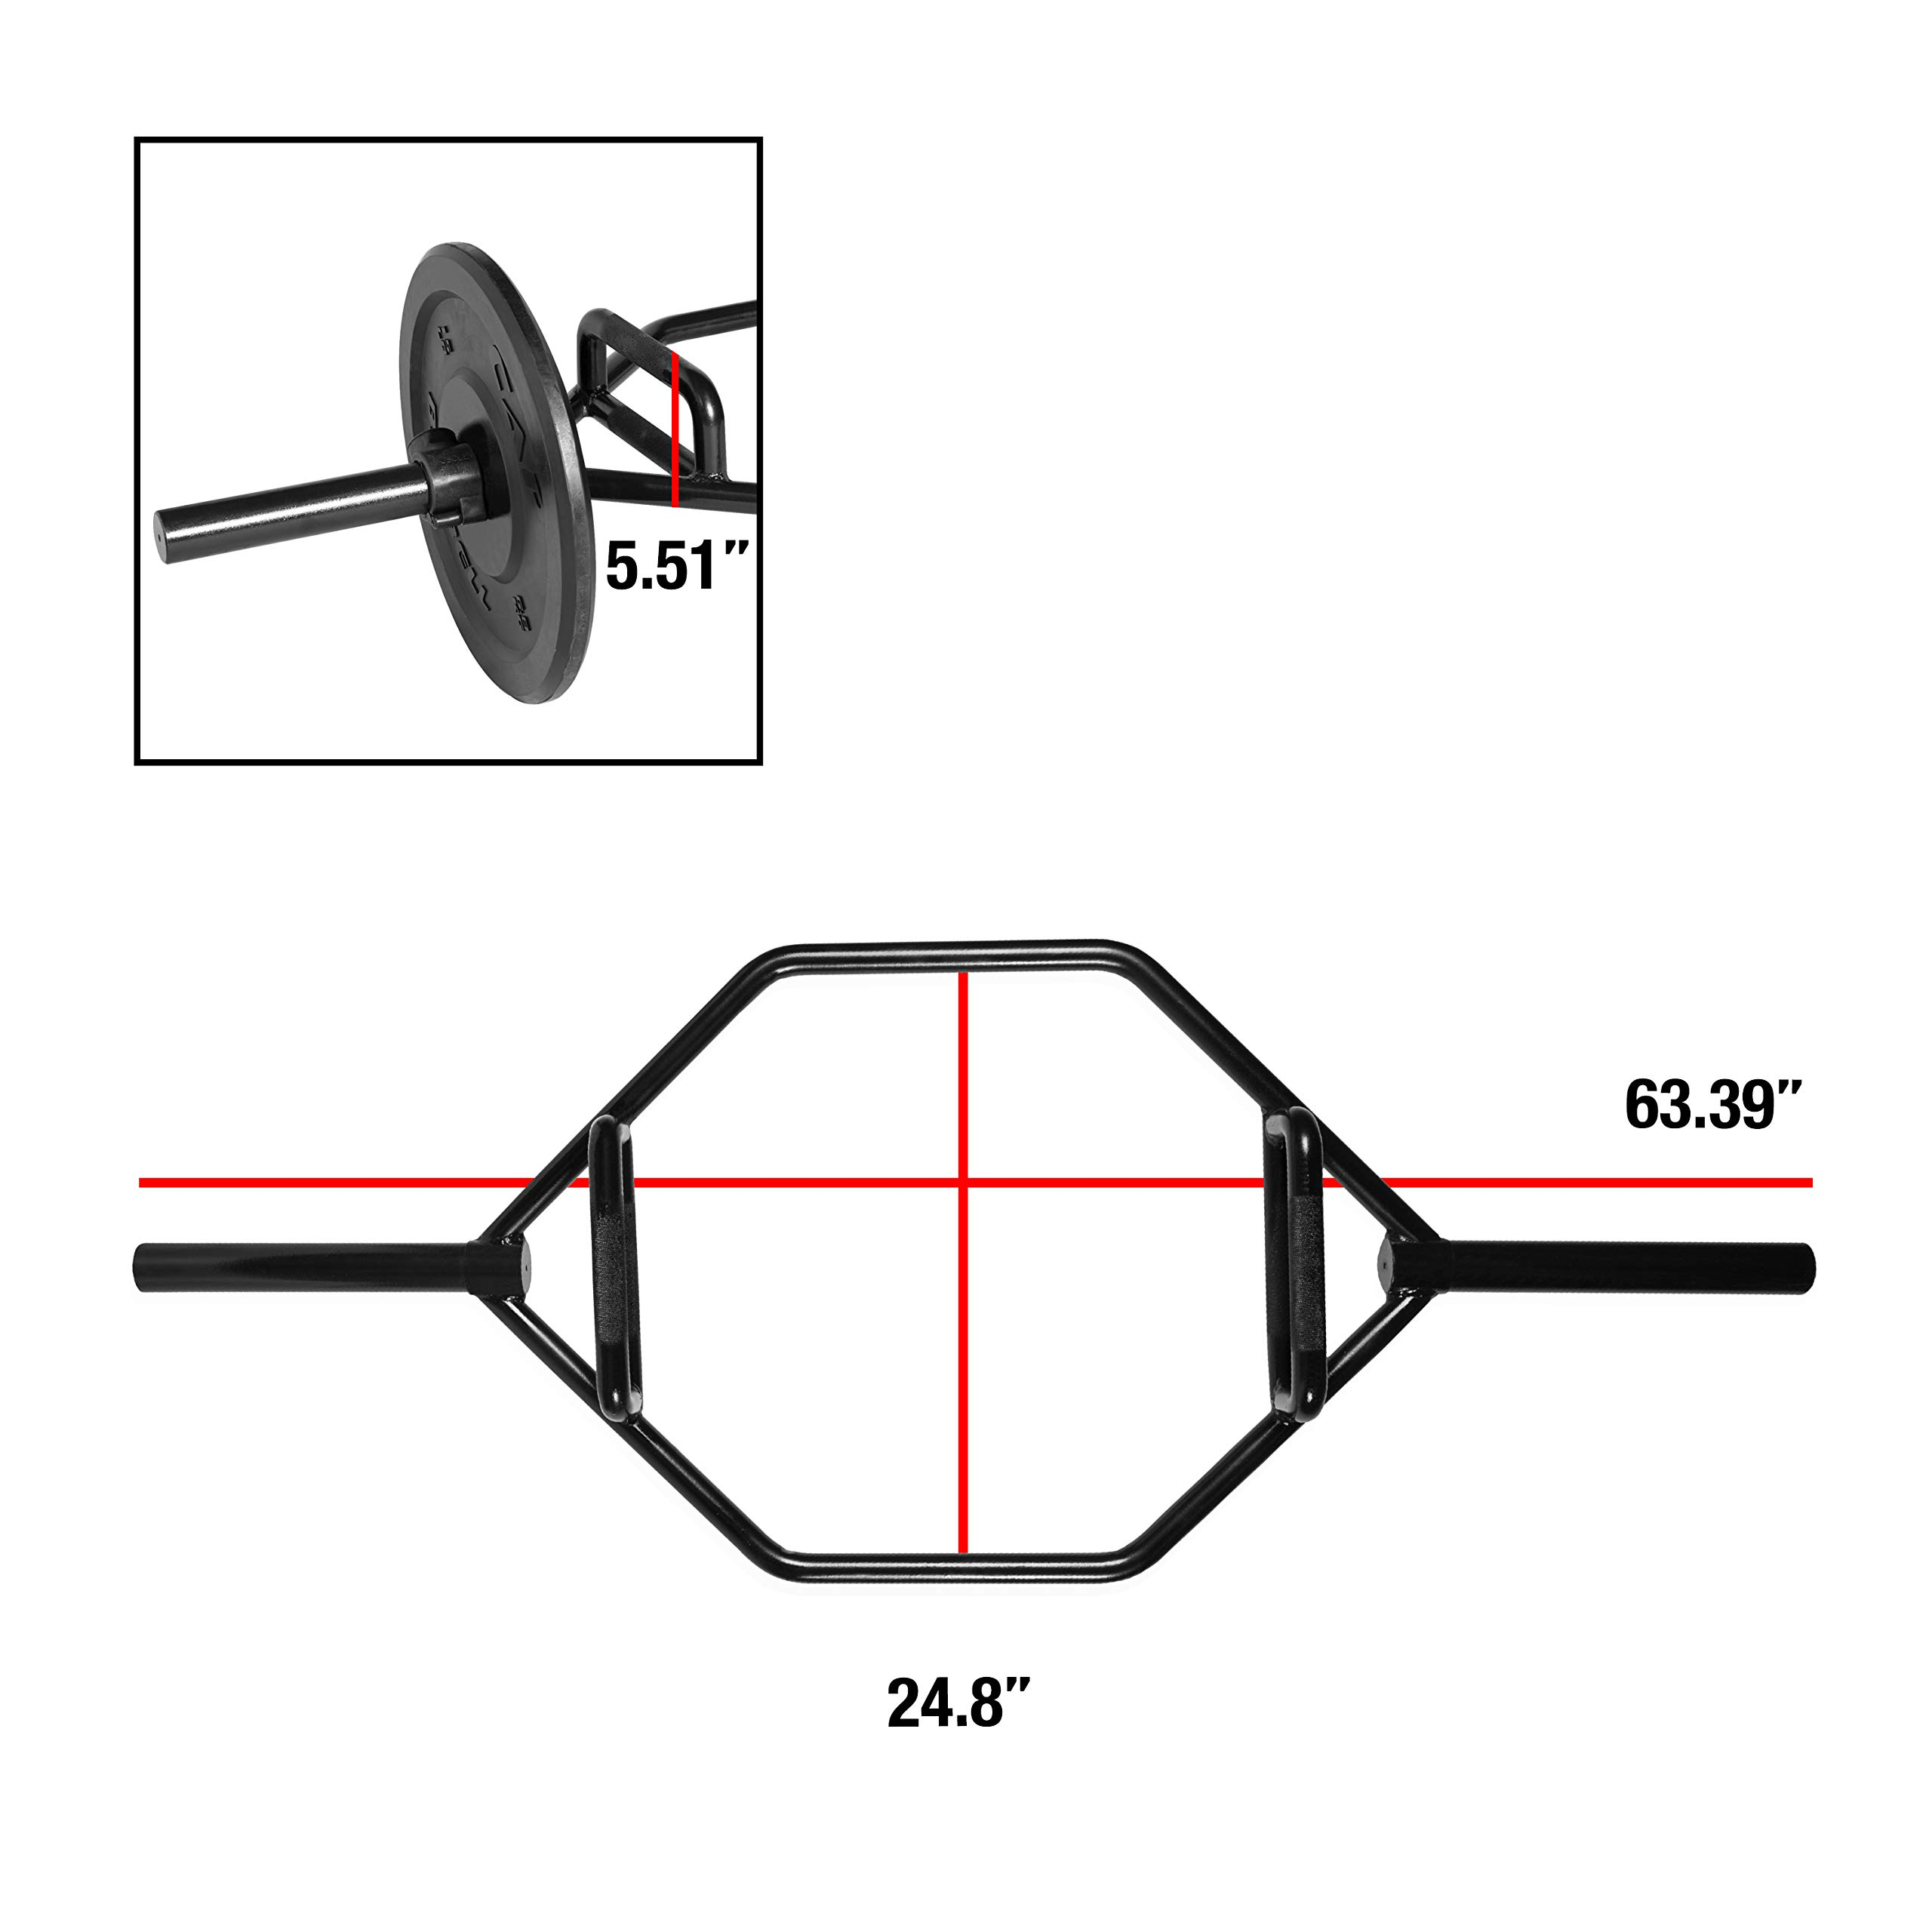 CAP Barbell OB-91HB Cap Mega Olympic Trap Bar, Shrug Bar, Hex Bar with Combo Neutral Grips and Black Finish, Black, Combo Neutral Grips by CAP Barbell (Image #2)